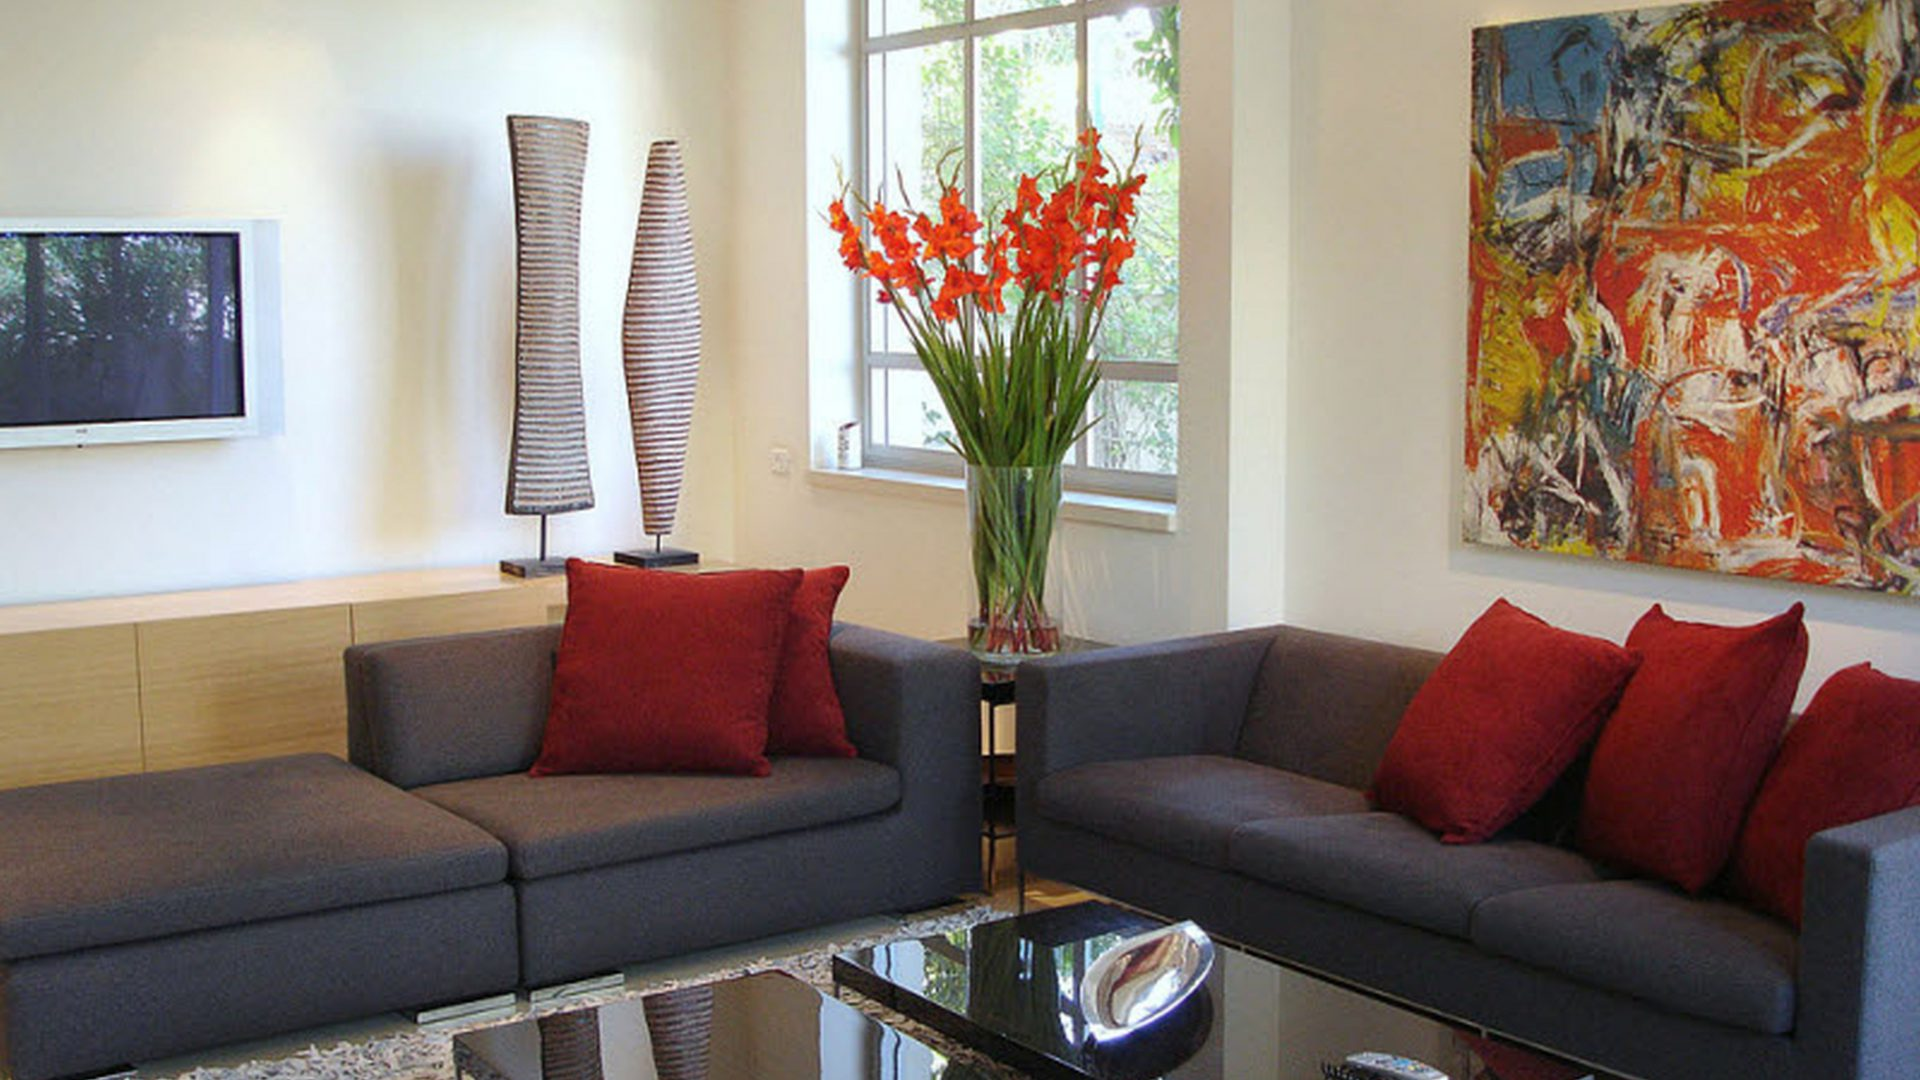 10 Inexpensive Ways To Decorate Your Living Room - Feed ...